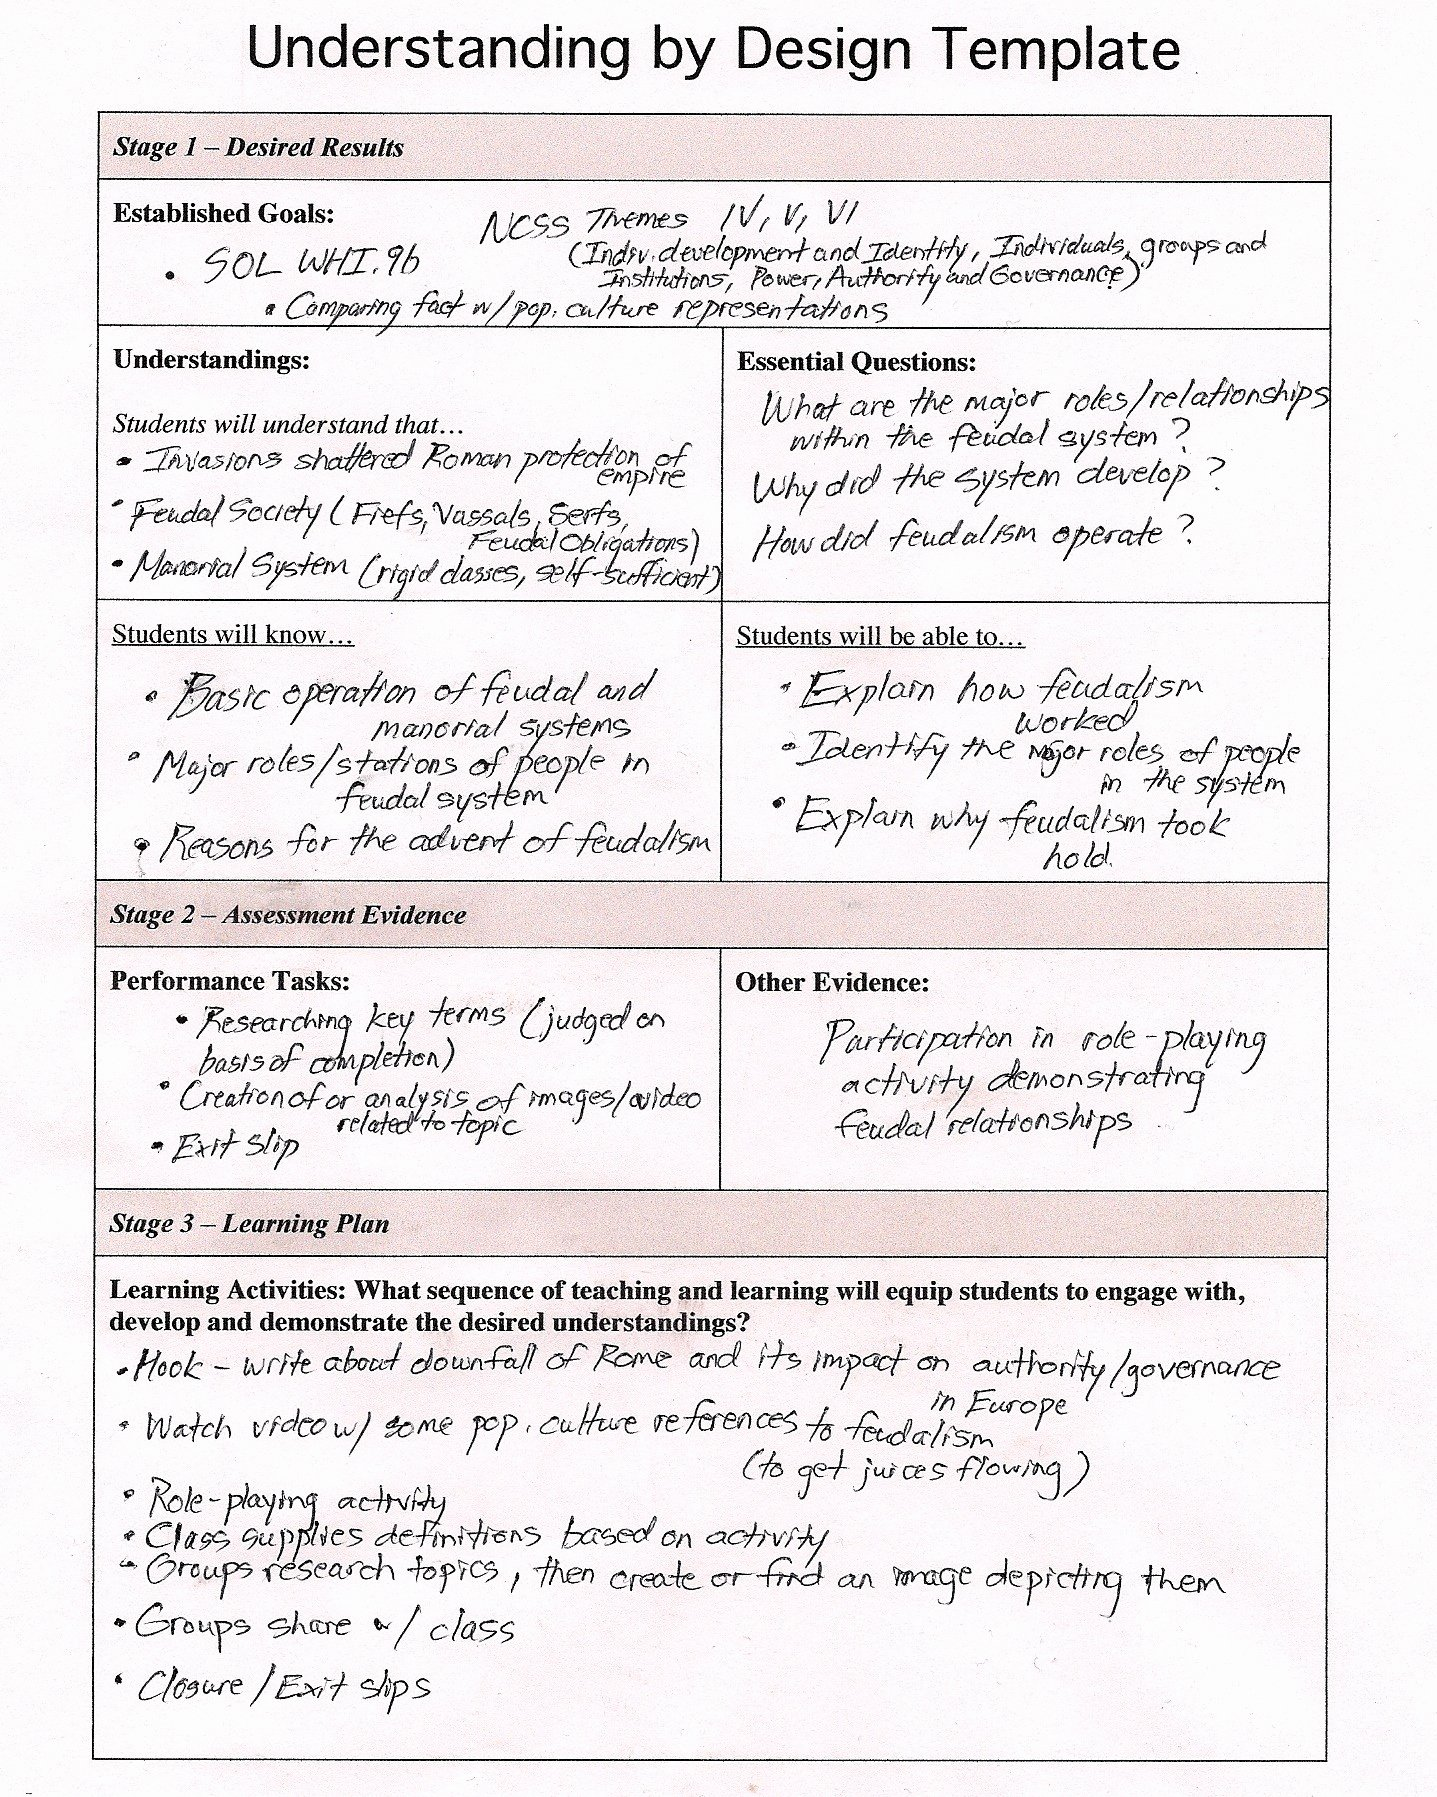 Blank Ubd Lesson Plan Template Luxury Ubd Lesson Plan Template Understanding by Design Blank